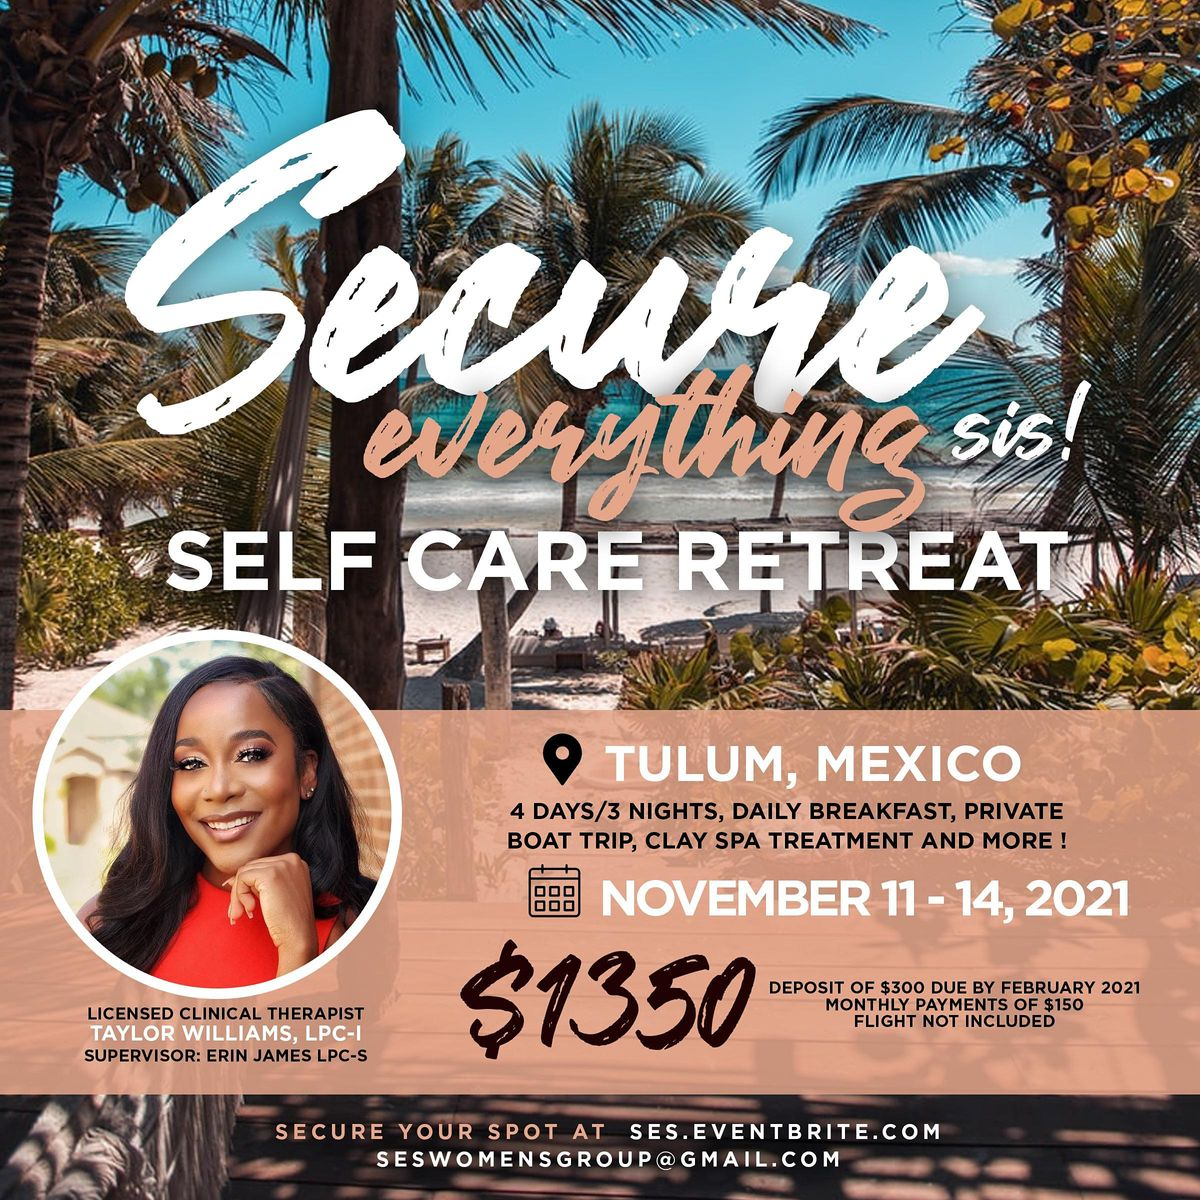 Secure Everything, Sis  Self-Care Retreat: Tulum Edition, 11 November | Event in Tulum | AllEvents.in